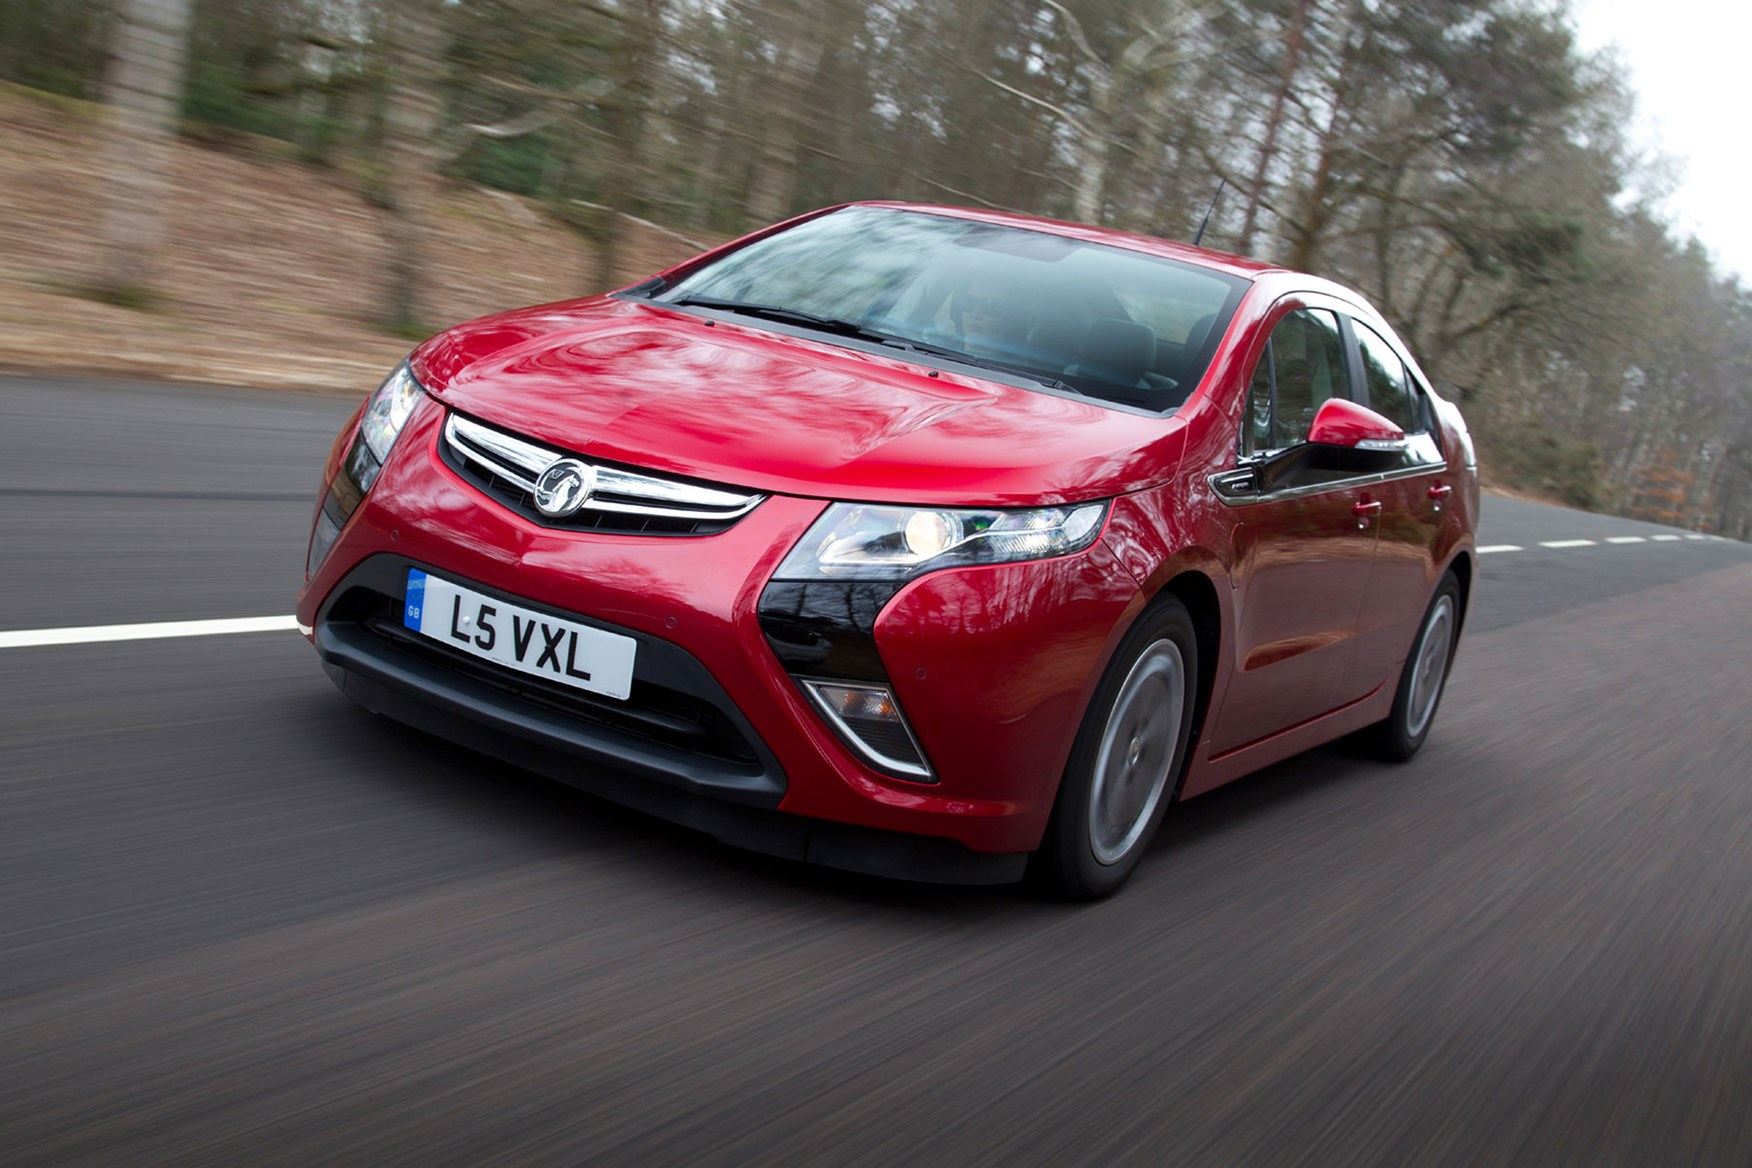 2014 Vauxhall Ampera on the road, front